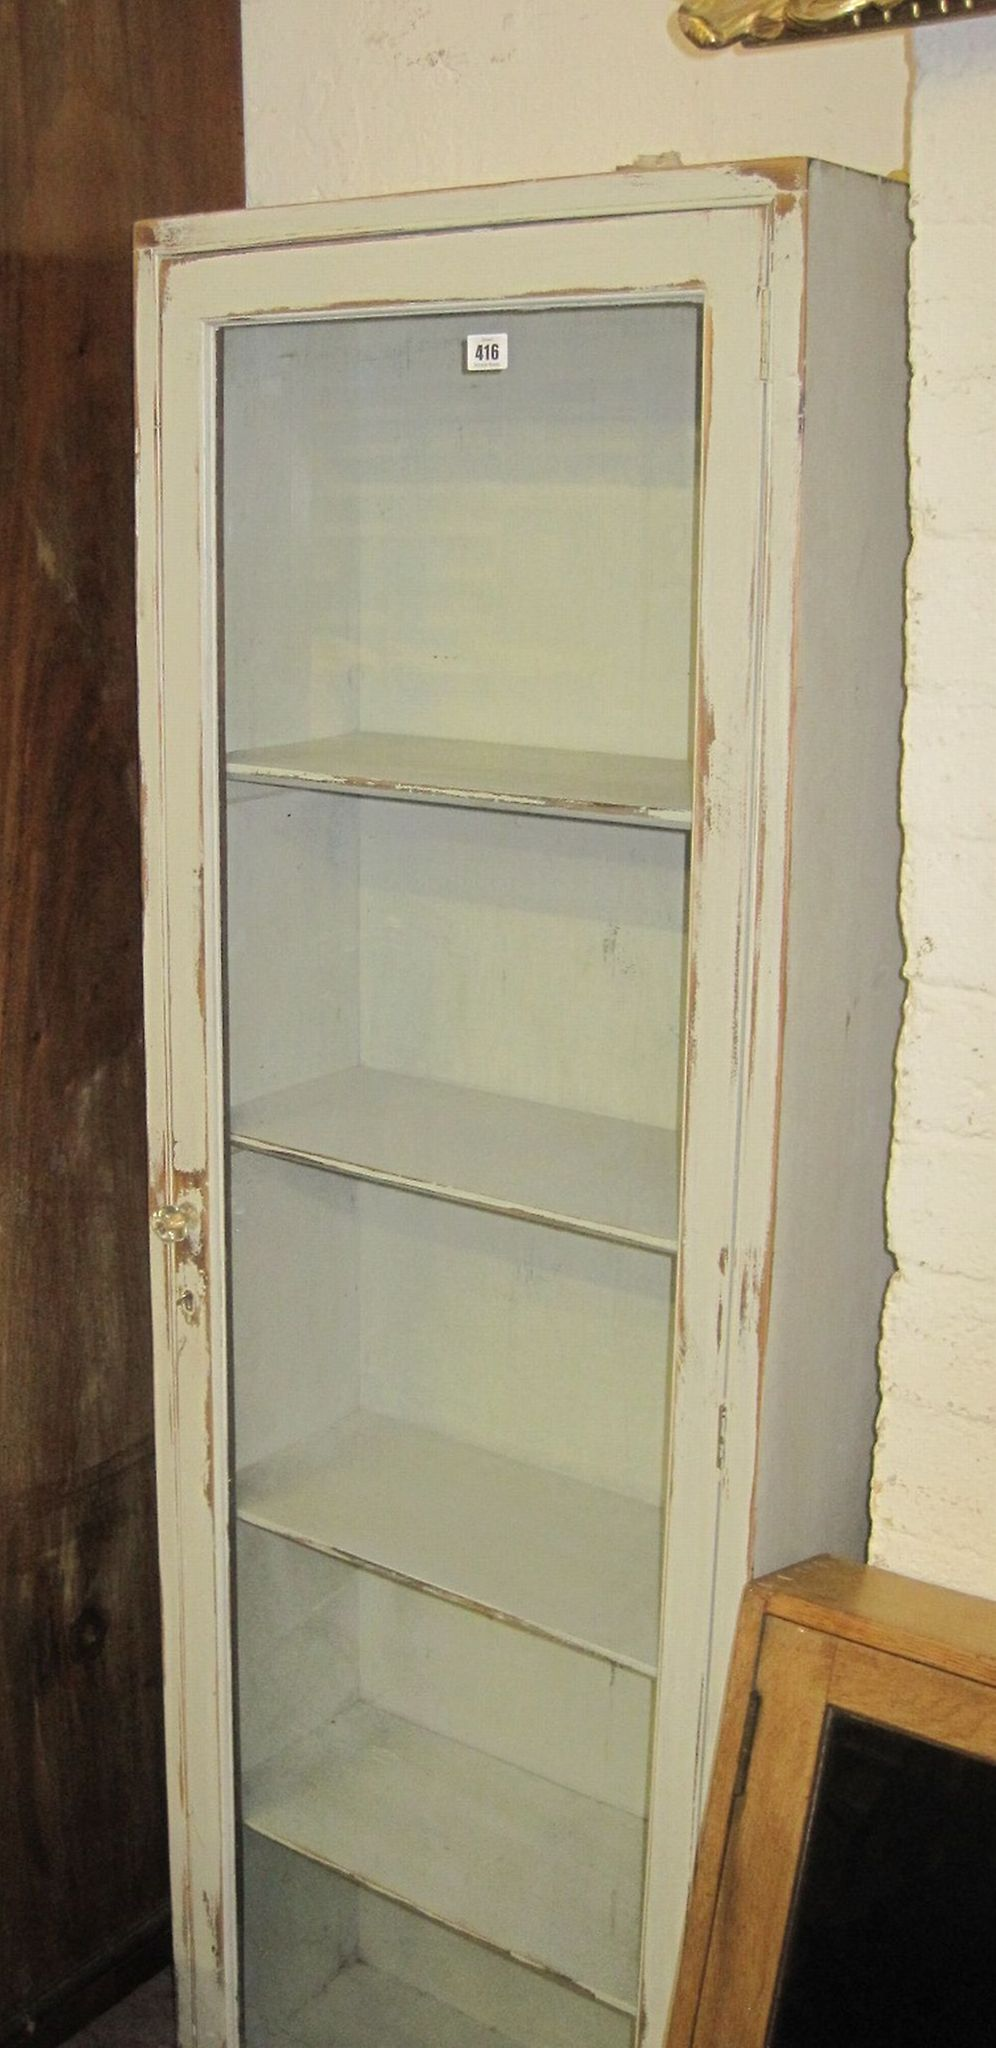 A painted display cabinet enclosing shelves